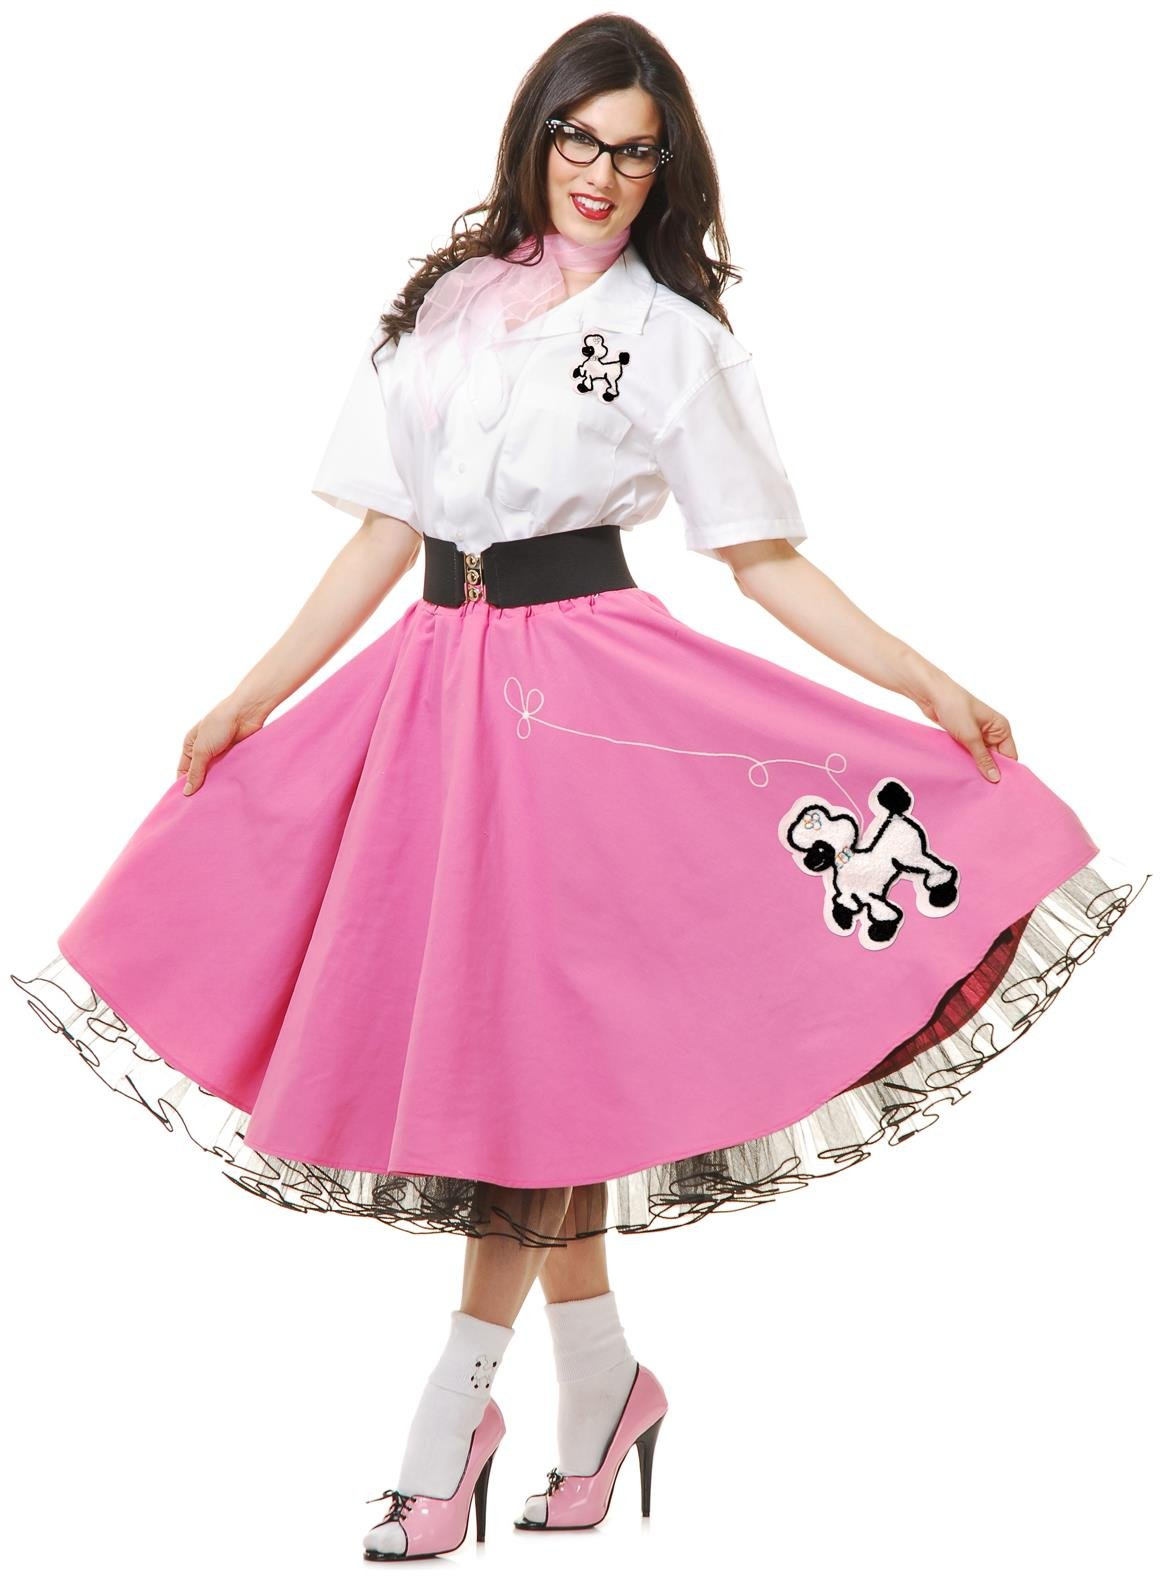 Complete 50's Poodle Outfit Adult Costume Pink - Medium